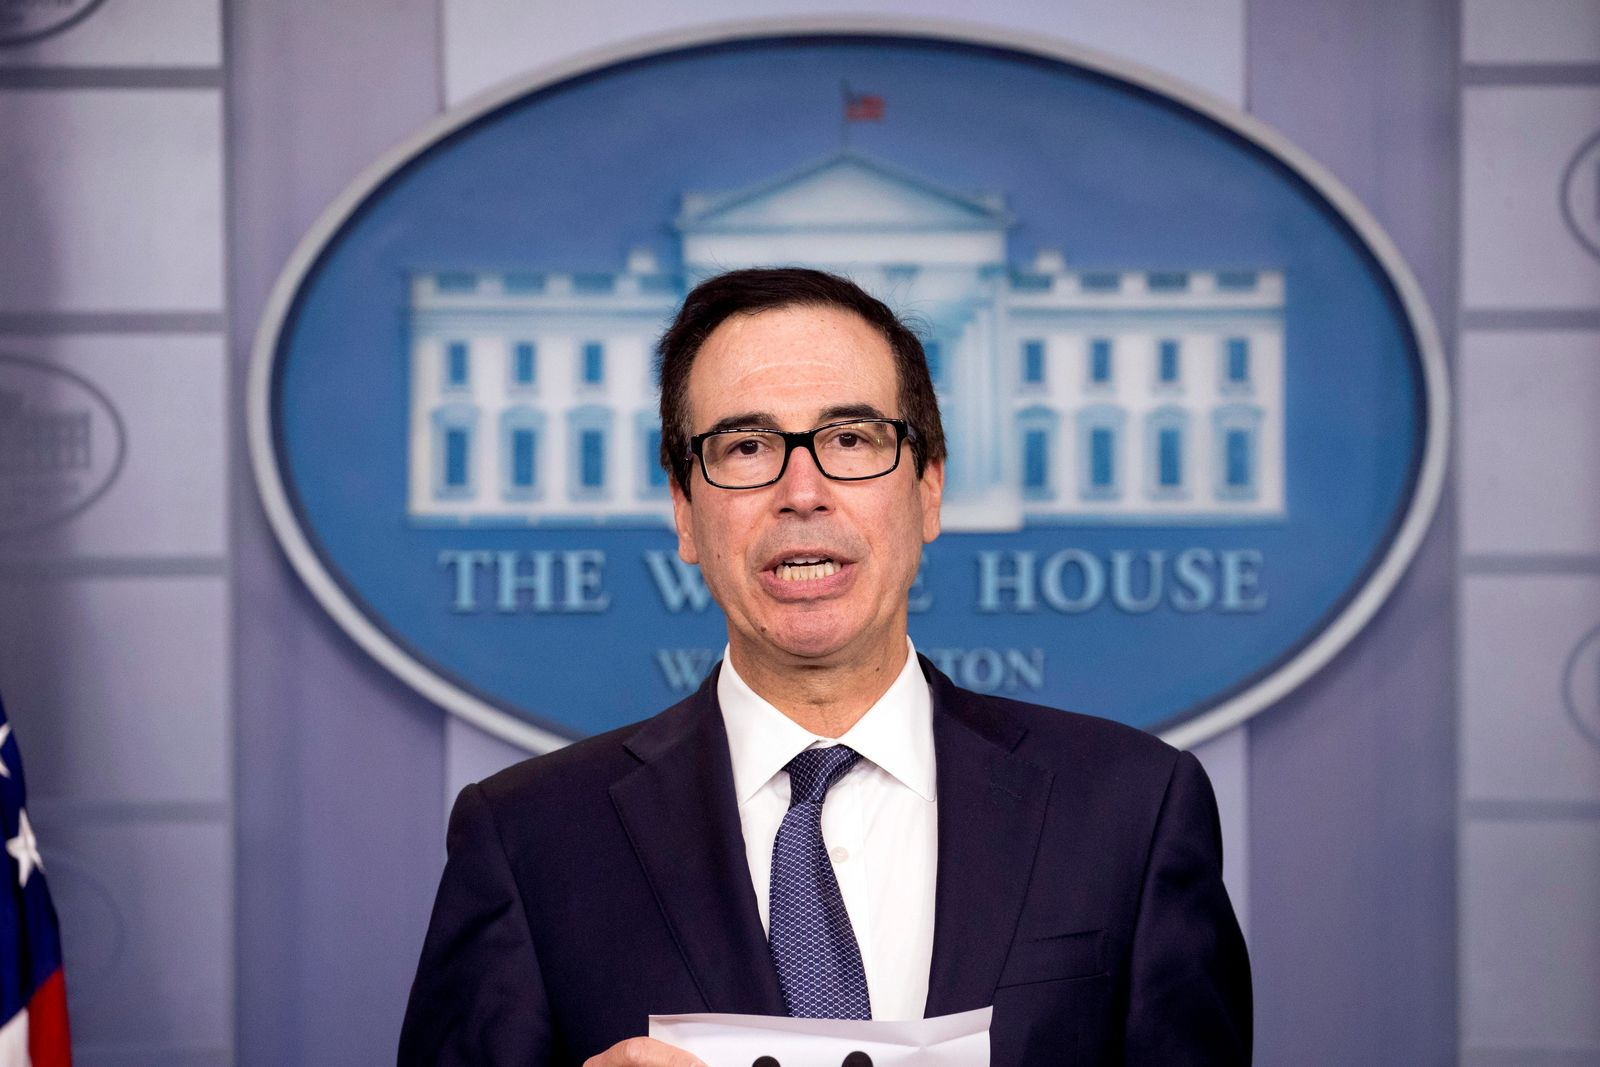 Treasury Secretary Steven Mnuchin speakd in the Briefing Room of the White House in Washington, Friday, Oct. 11, 2019. (AP Photo/Andrew Harnik)